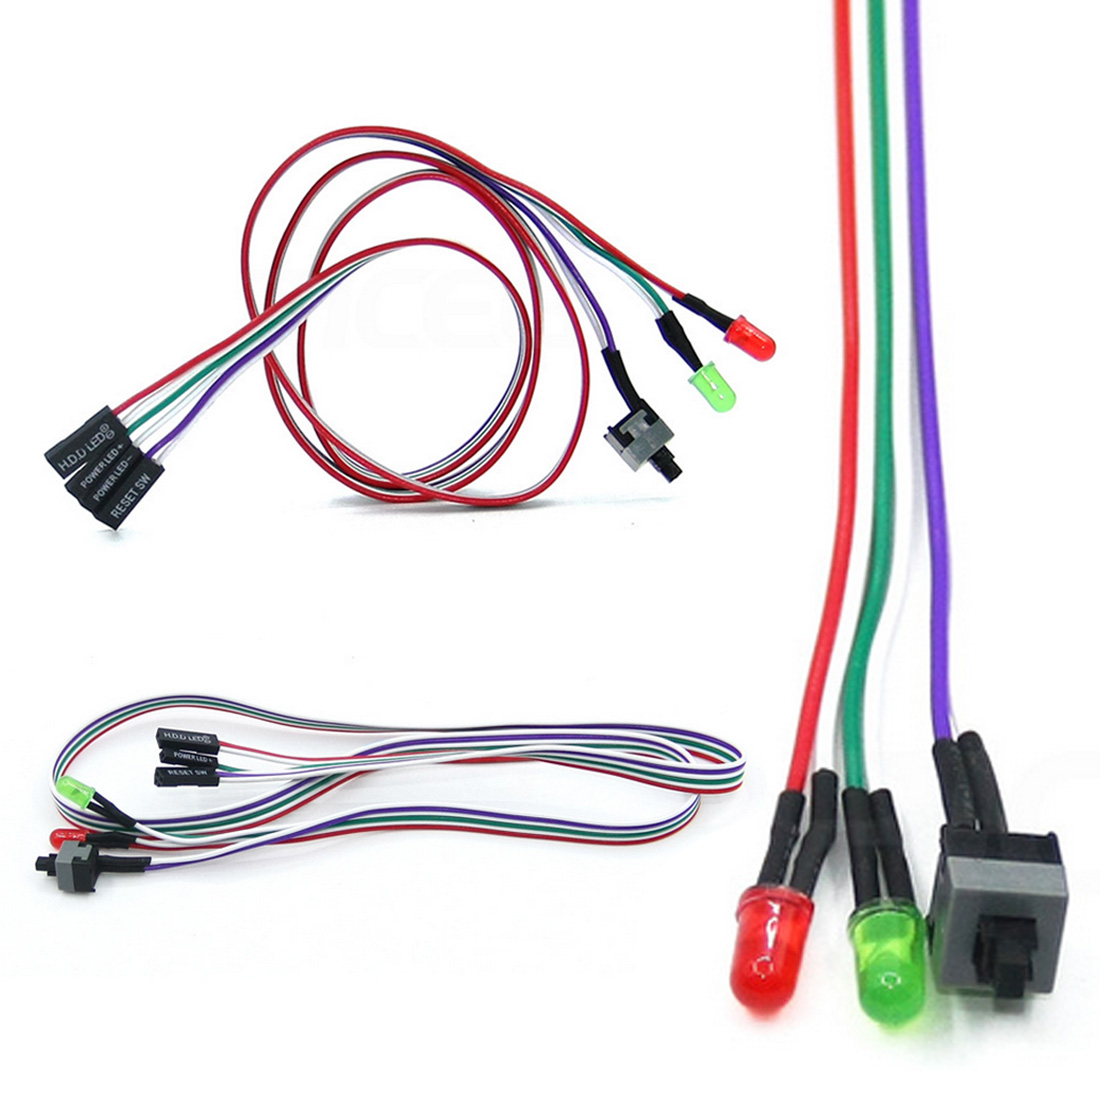 Power Cable ATX PC Compute Motherboard Power Cable 2 Switch On/Off/Reset With LED Light 60 CM Gadget